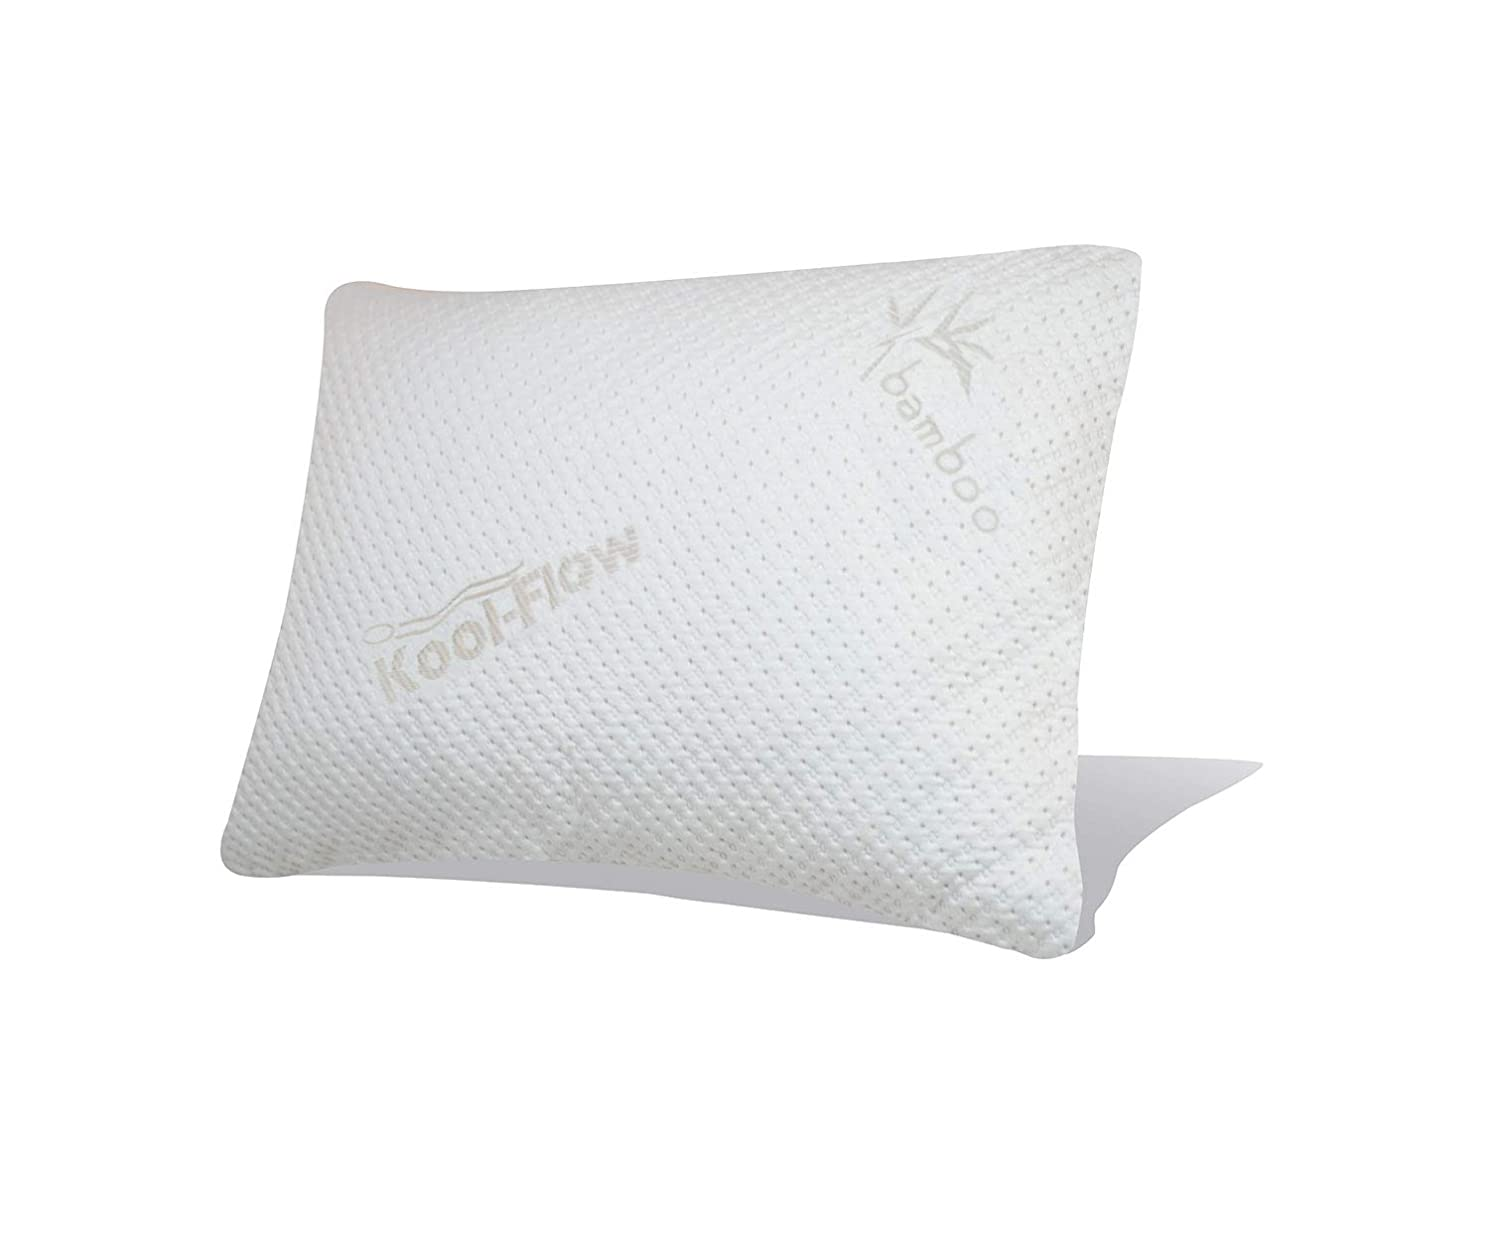 Snuggle-Pedic Ultra-Luxury Bamboo Shredded Memory Foam Pillow Combination with Kool-Flow Breathable Cooling Hypoallergenic Pillow Outer Fabric Covering Best Hypoallergenic Pillows